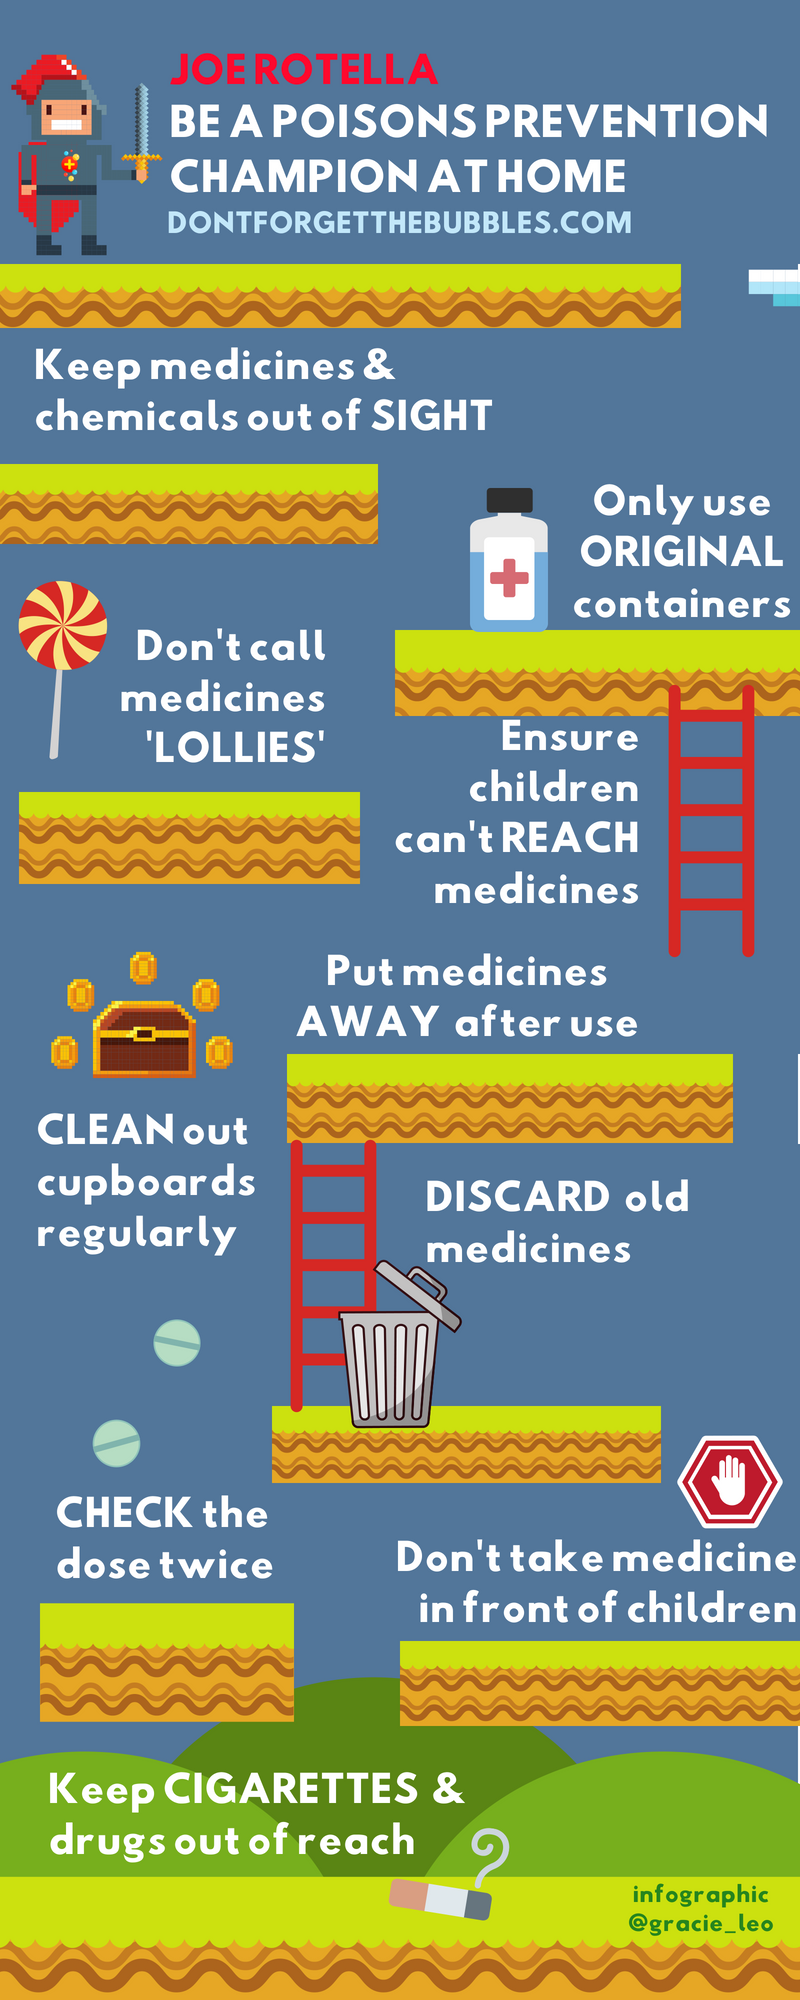 preventingpoisons_gl.png